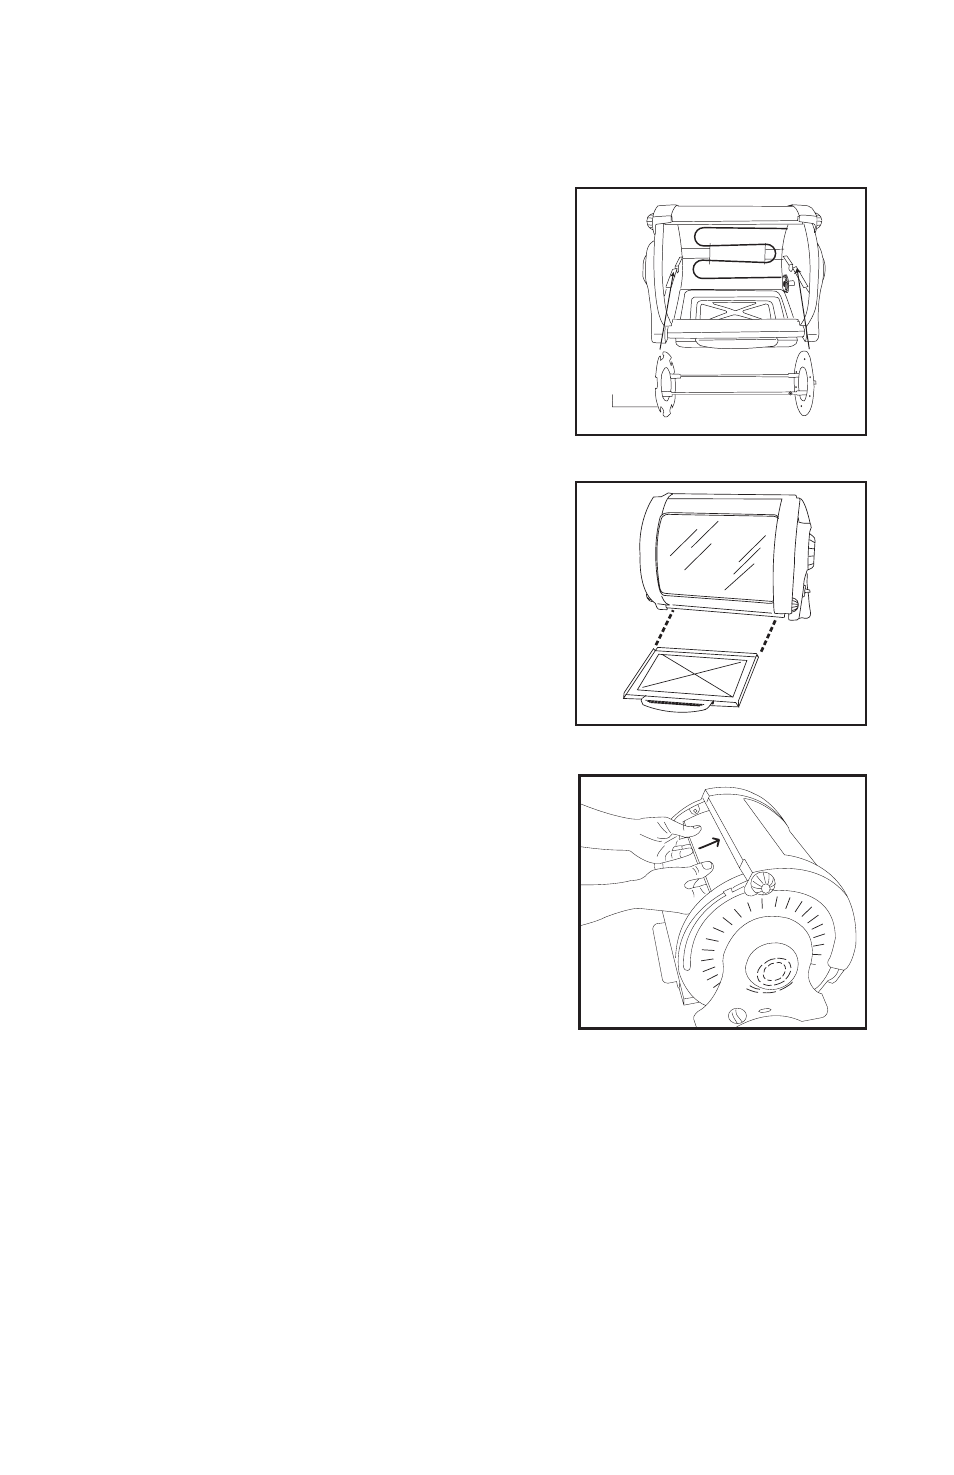 Assemble drip tray, Insert reflector | George Foreman GR82 User Manual |  Page 12 / 32